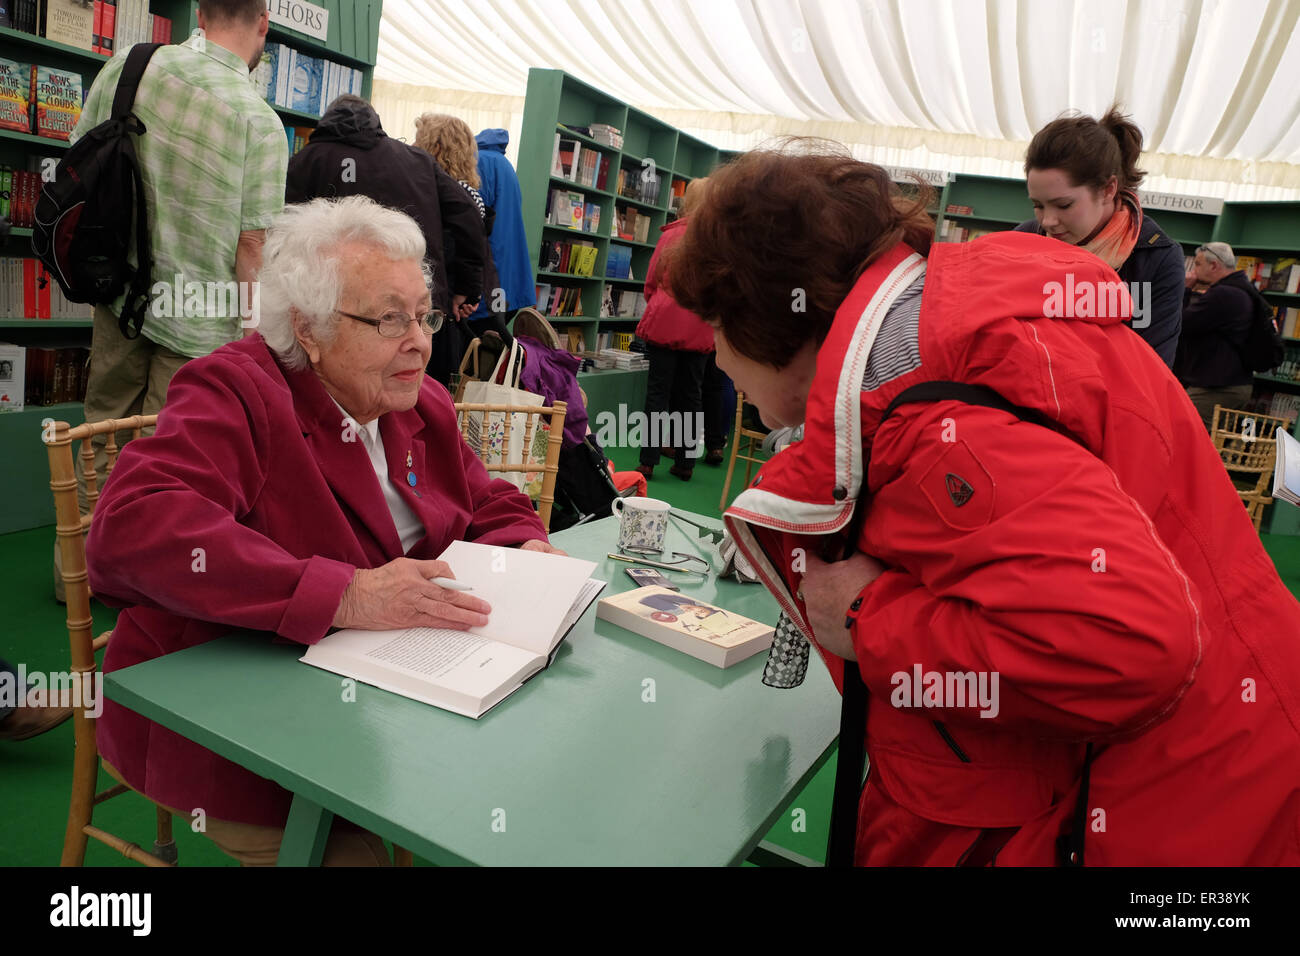 Hay Festival, Powys, Wales - May 2015  - Author Eileen Younghusband signs copies of her latest book One Woman's - Stock Image